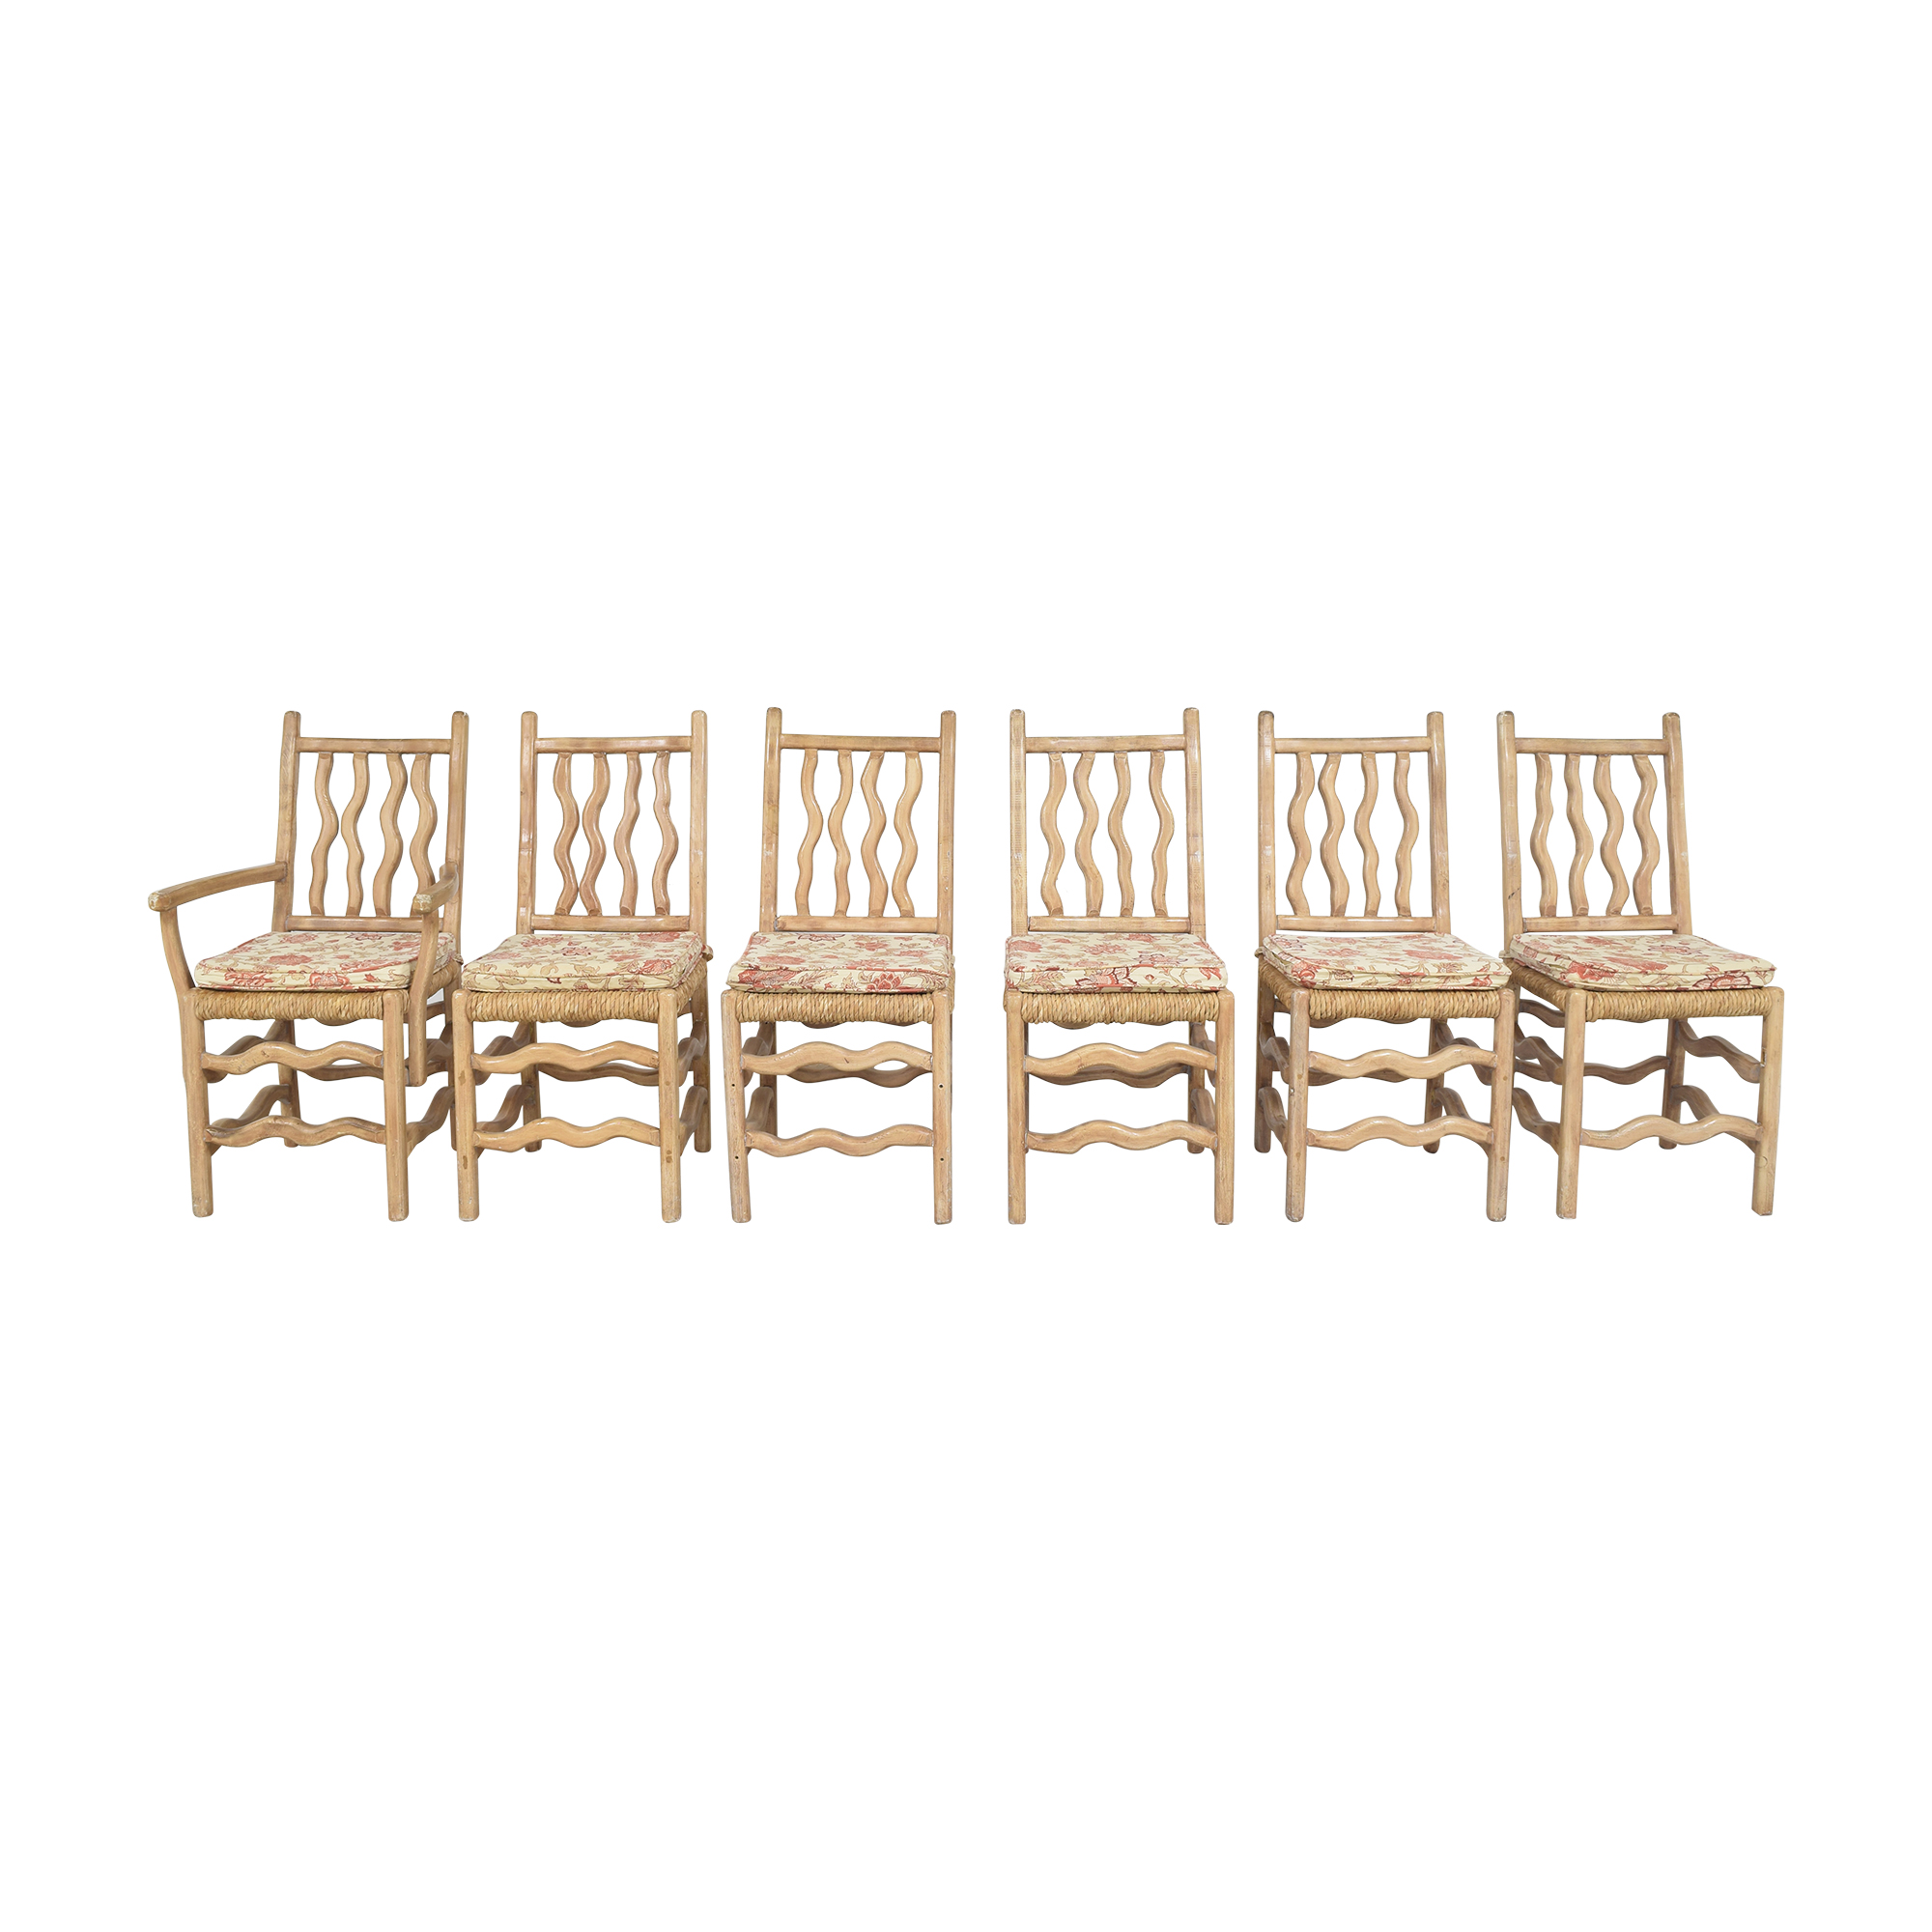 American Woodcrafters American Woodcrafters Cane Seat Dining Chairs price